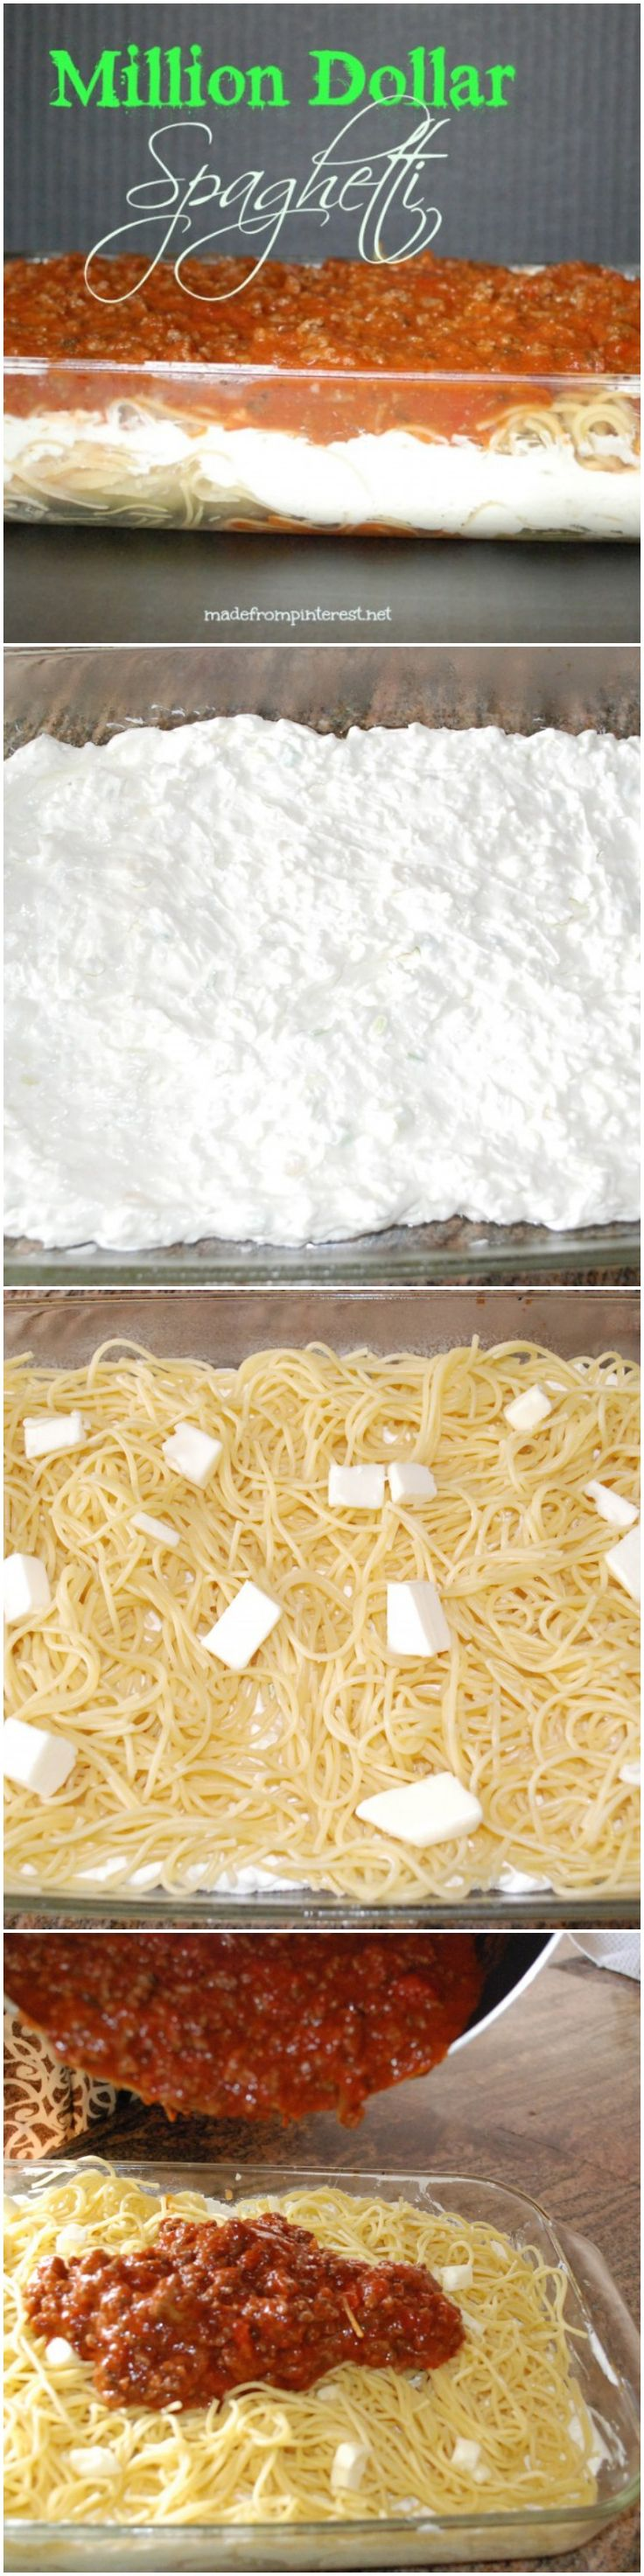 Million Dollar Spaghetti-made this for a family gathering (used curly noodles)..everyone loved it..from toddlers to grandparents! R-3